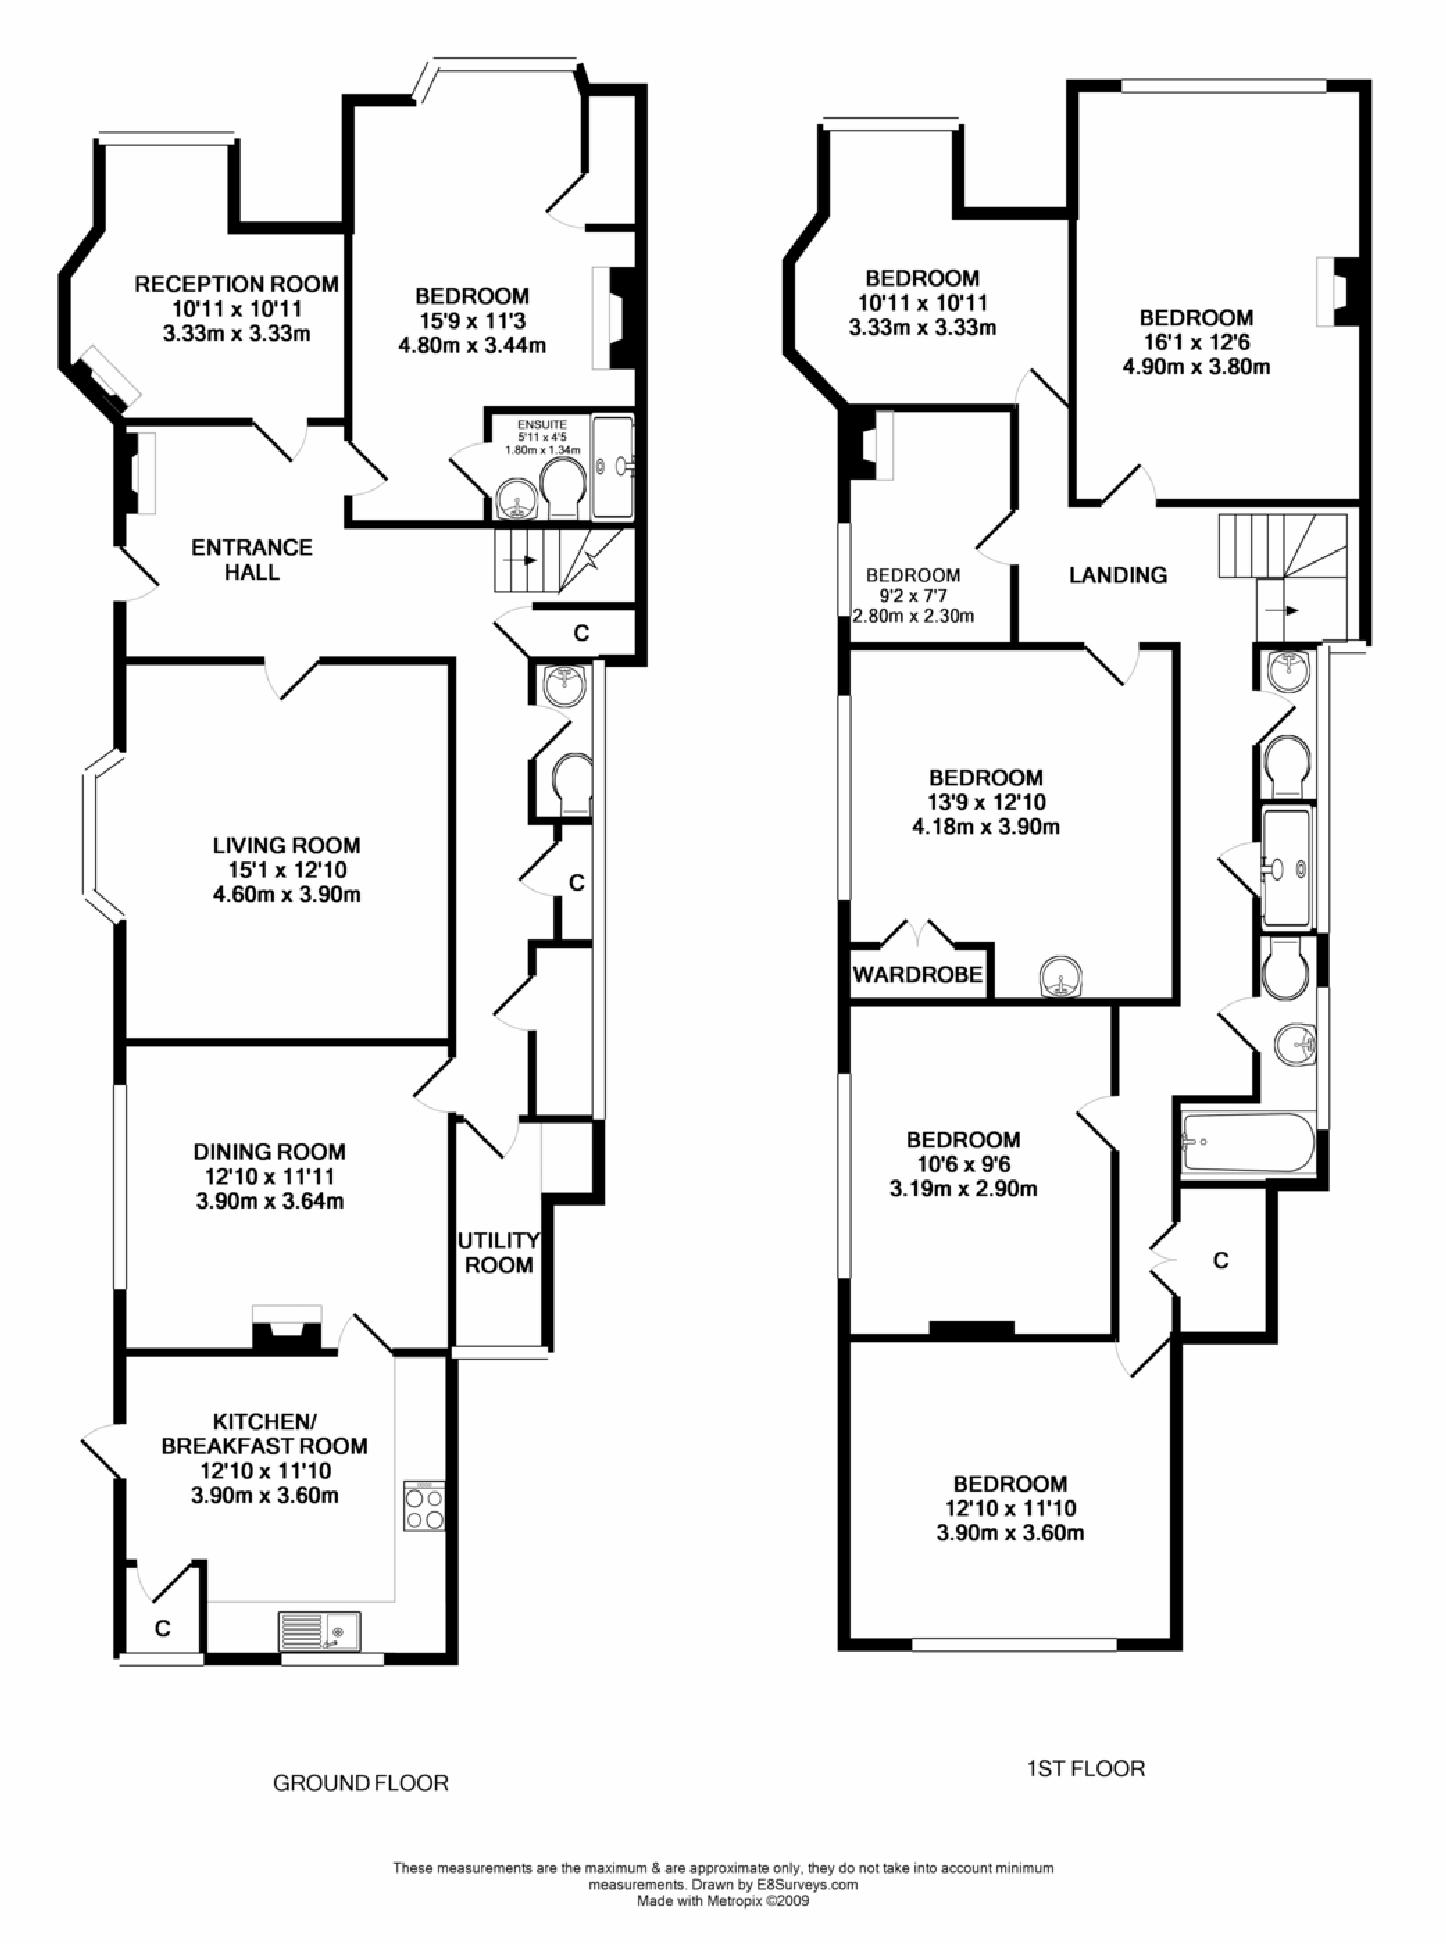 Find floor plans for my house thefloors co for Buy floor plan